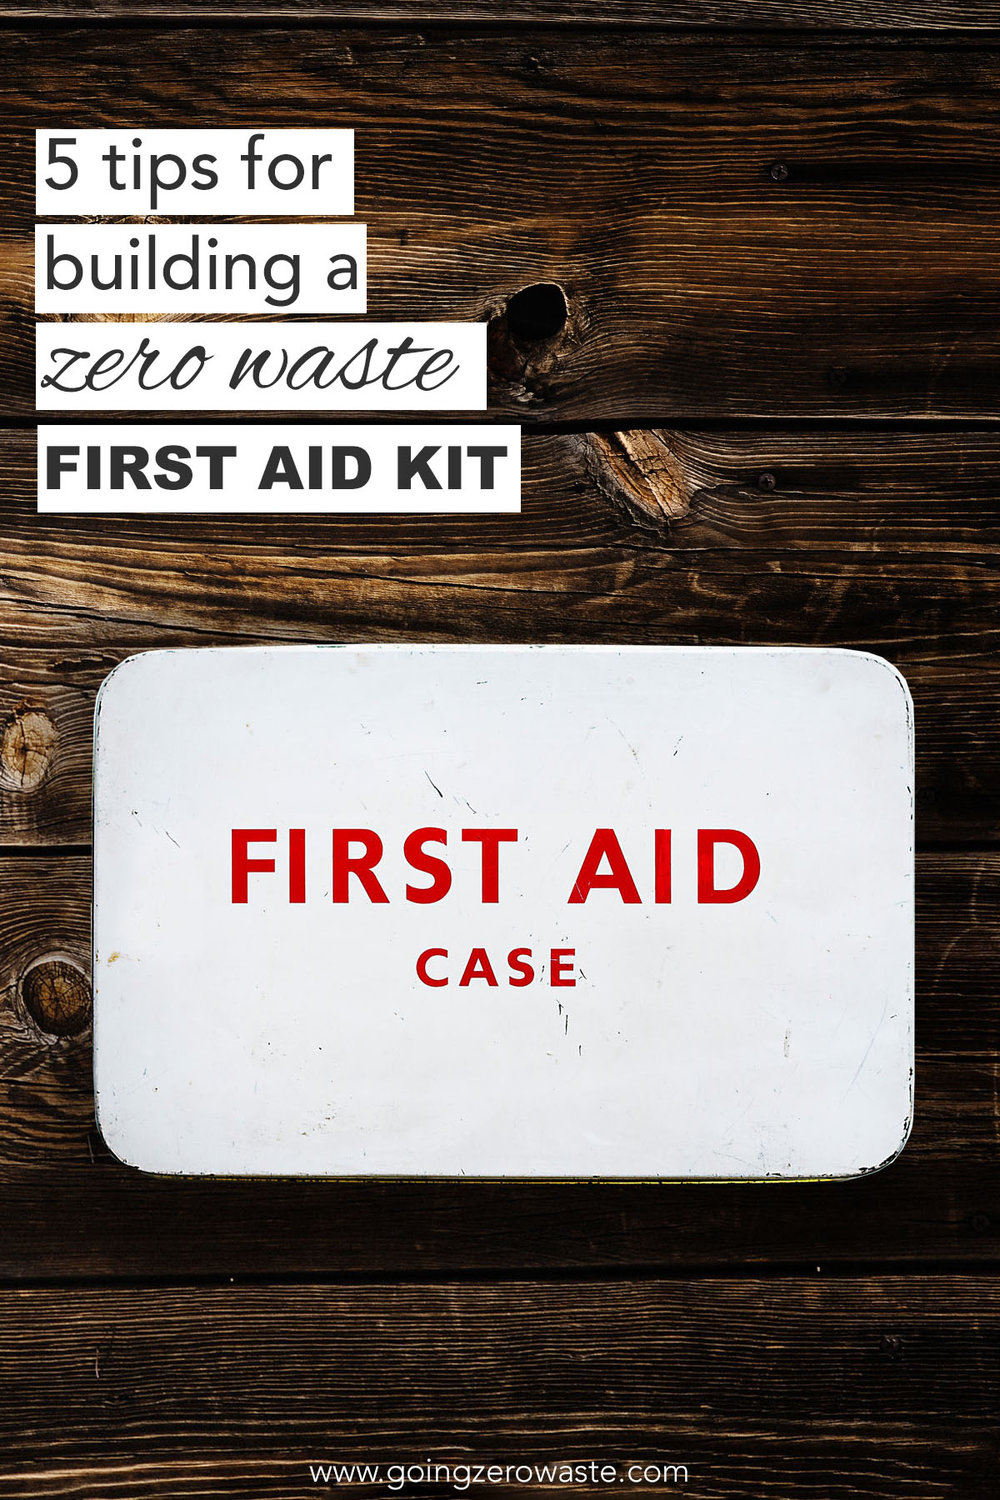 5 tips for creating a zero waste first aid kit from www.goingzerowaste.com #ecofriendly #zerowaste #firstaid